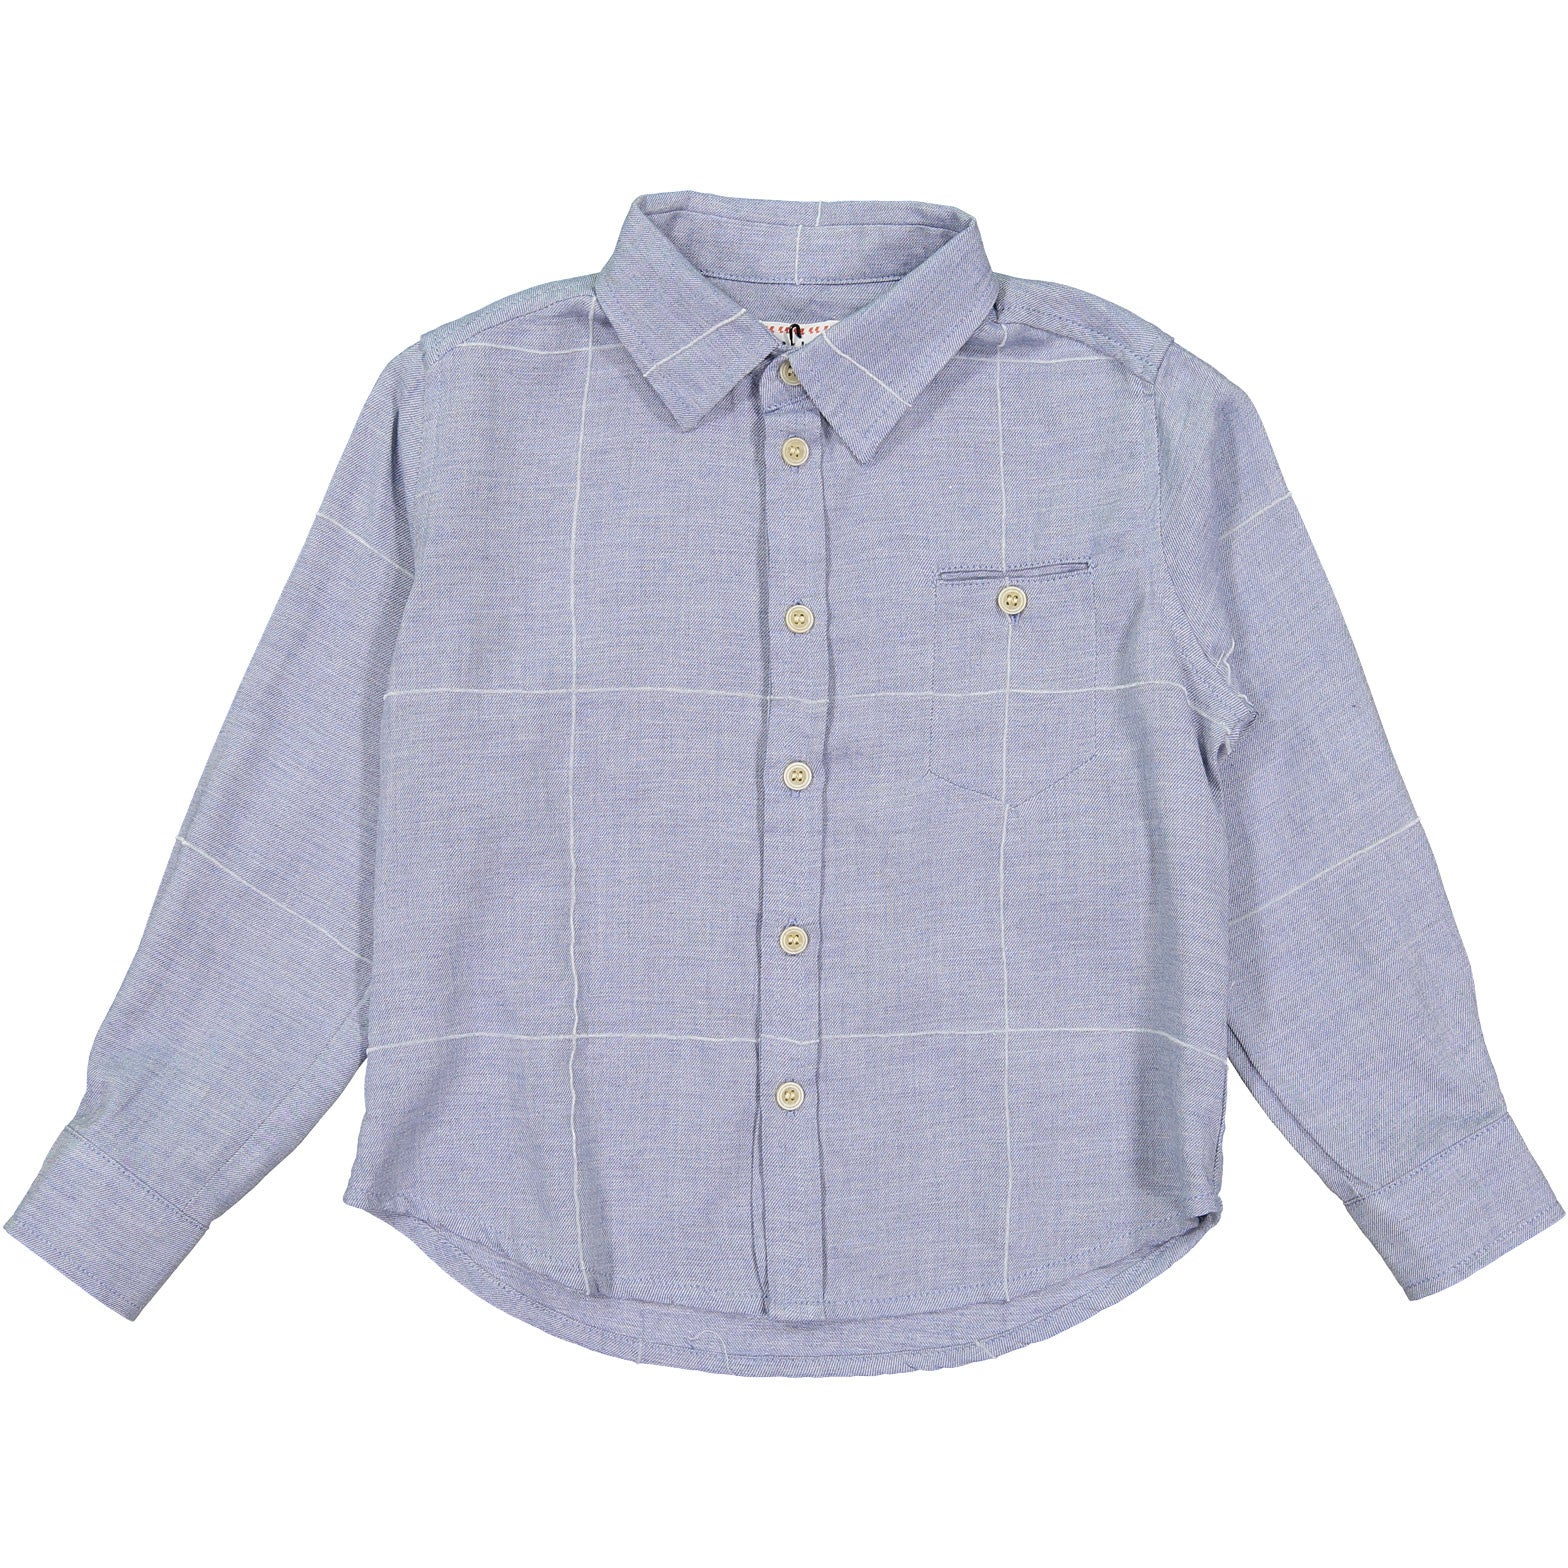 Morley Chambray Check Boys Shirt